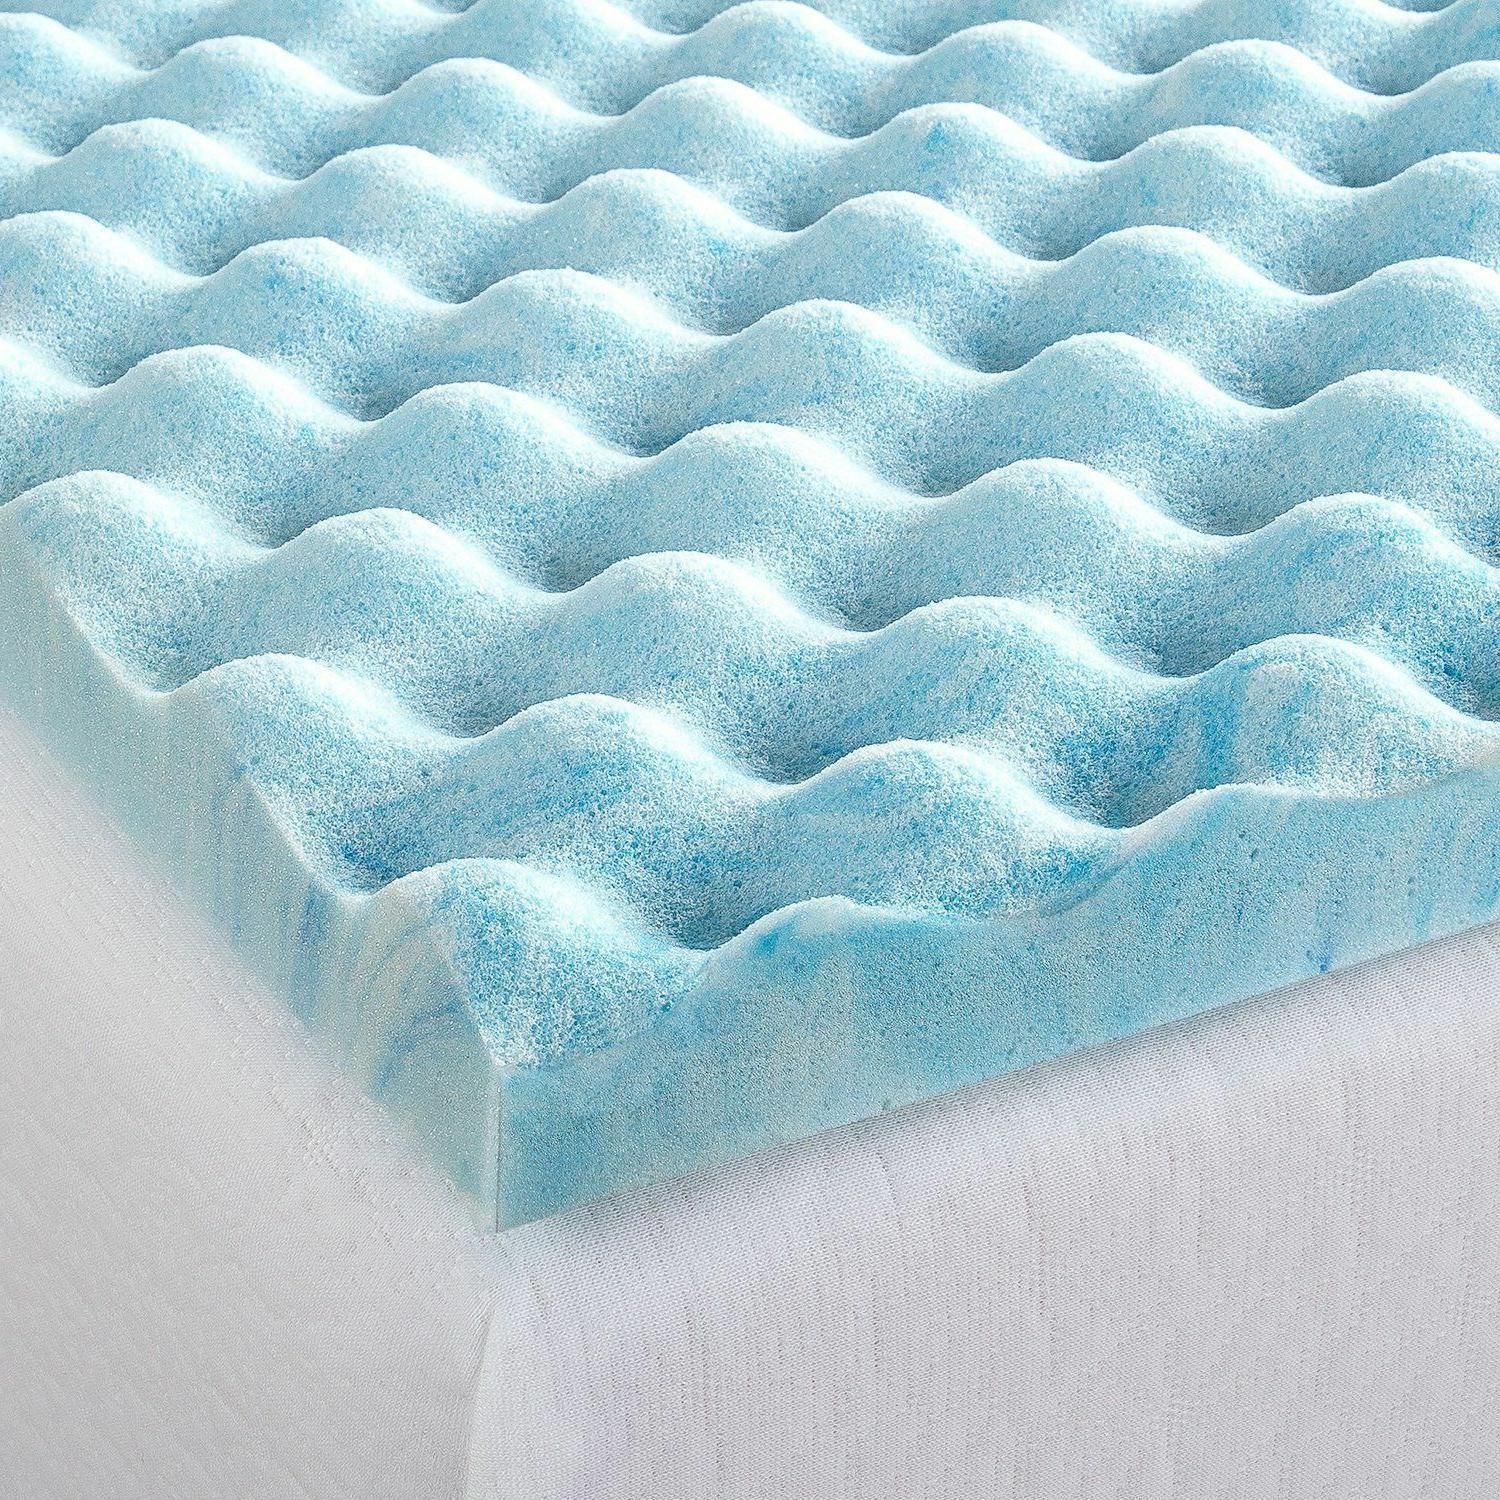 1.5/2/3/4 Inch Foam Topper Sleep Bed Pad Cover